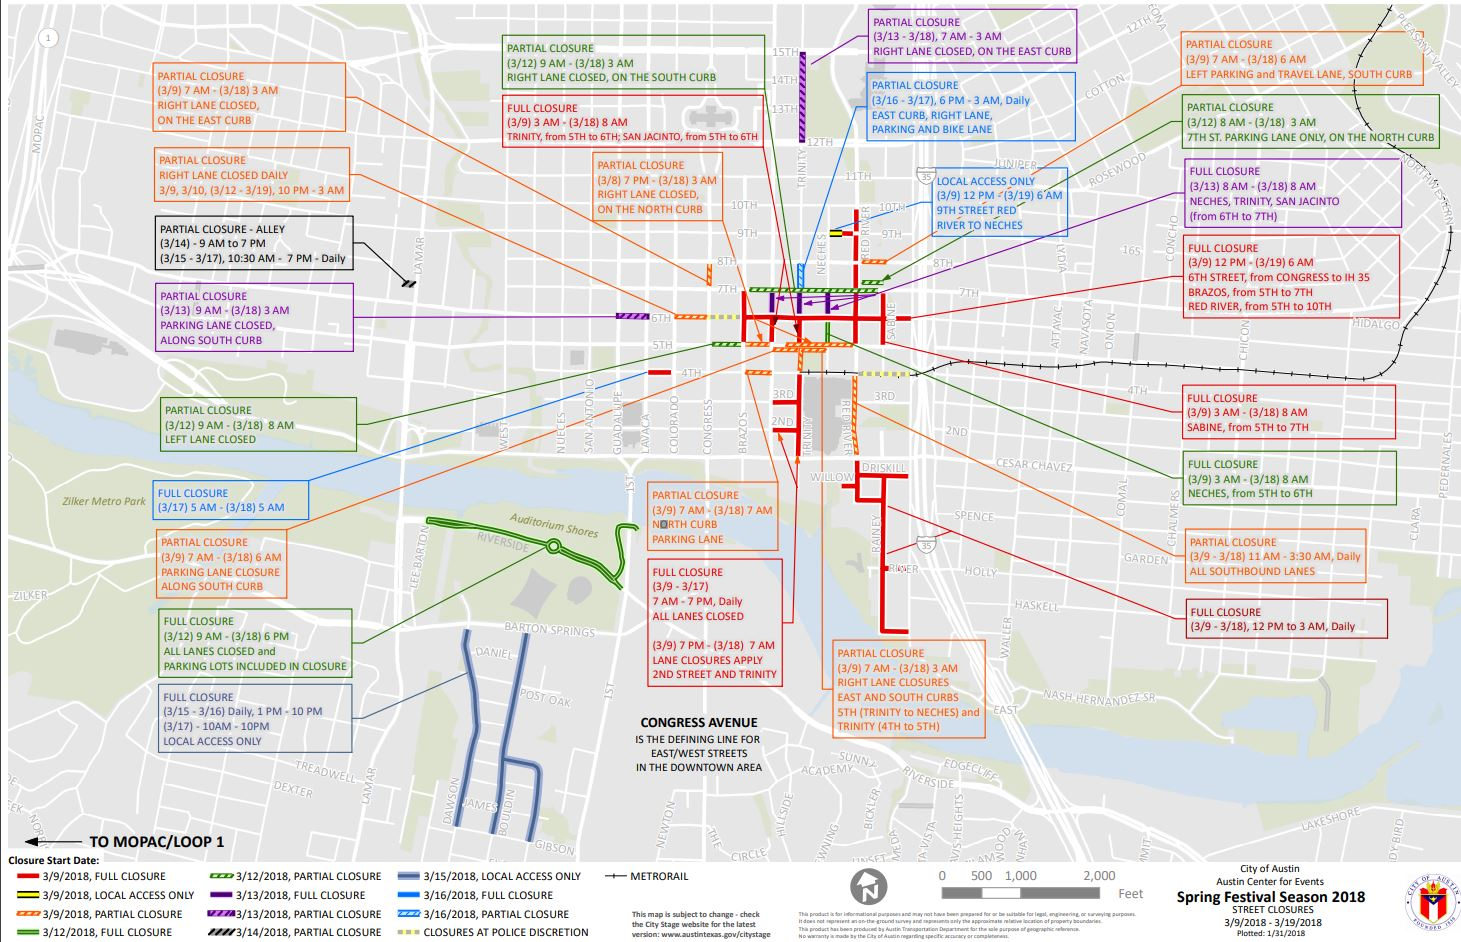 2018 SXSW Street closures map. (City of Austin)